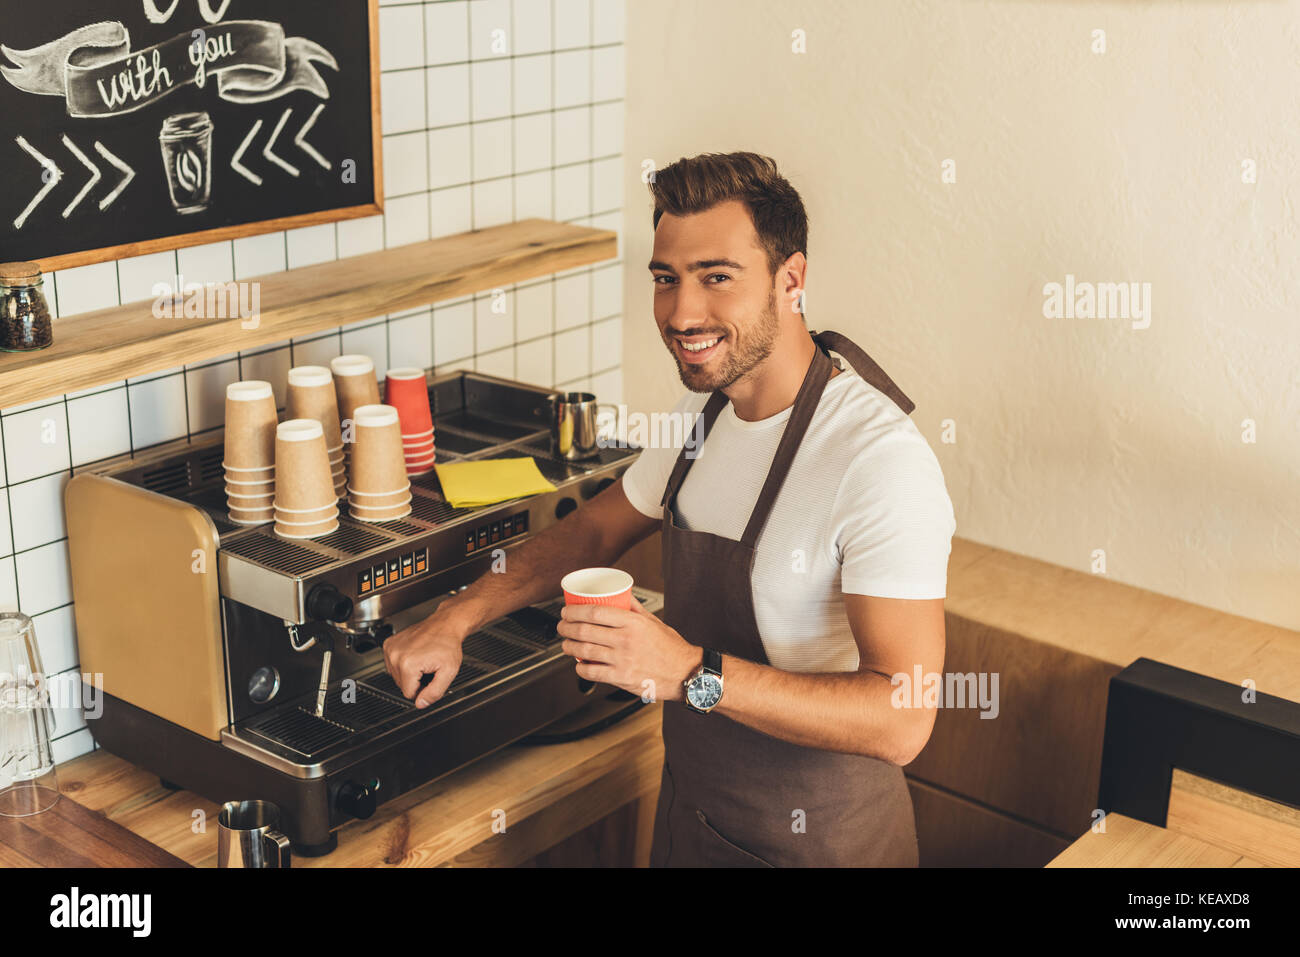 smiling barista with coffee to go - Stock Image